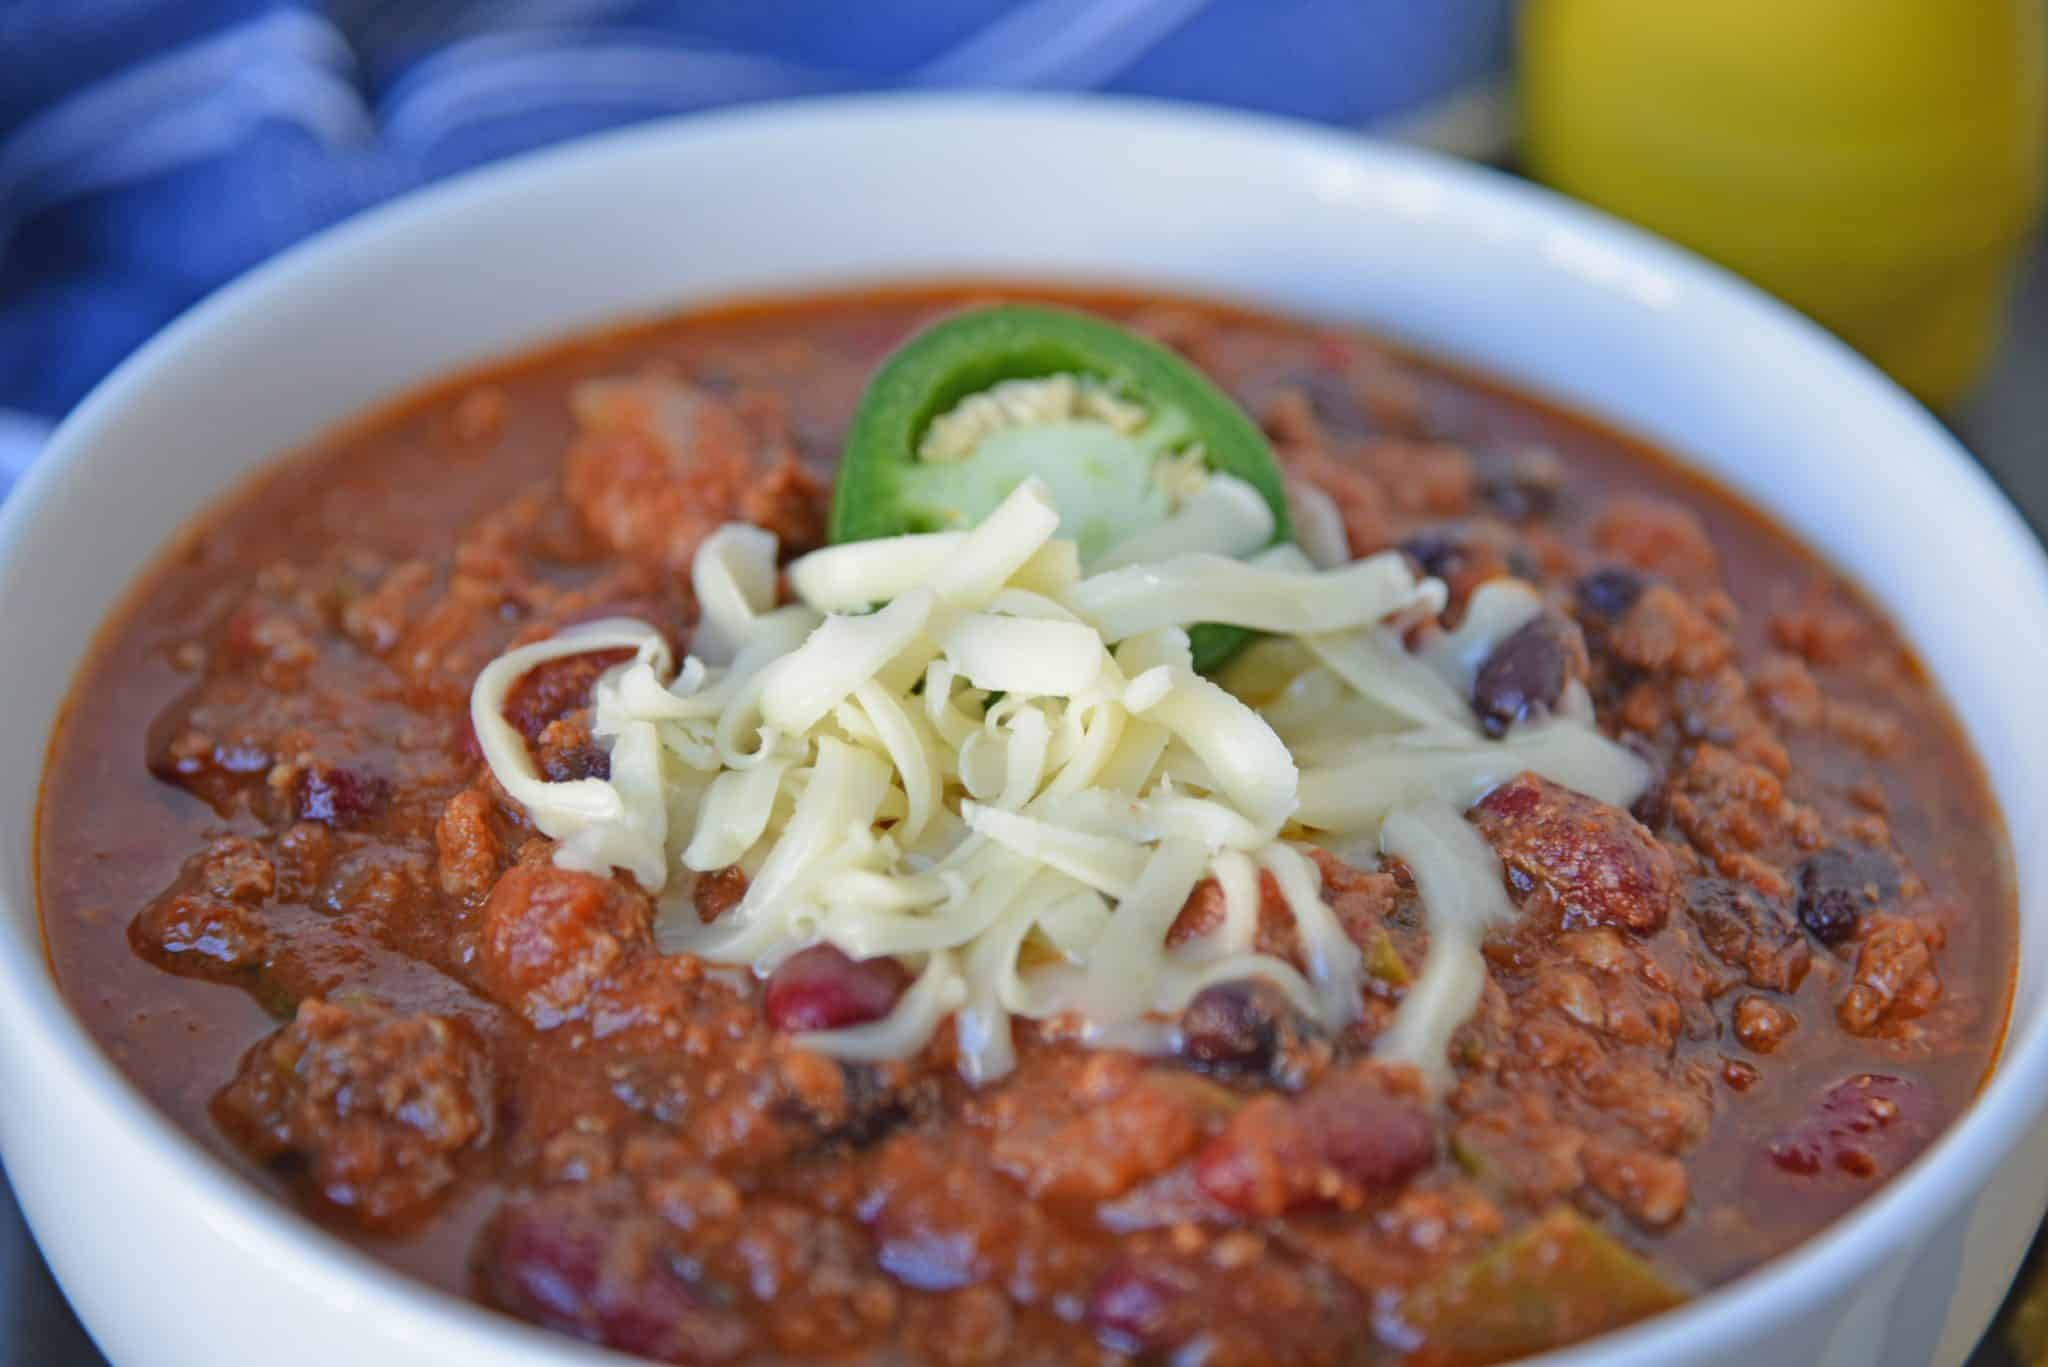 Chili in a white bowl - quick and easy meals